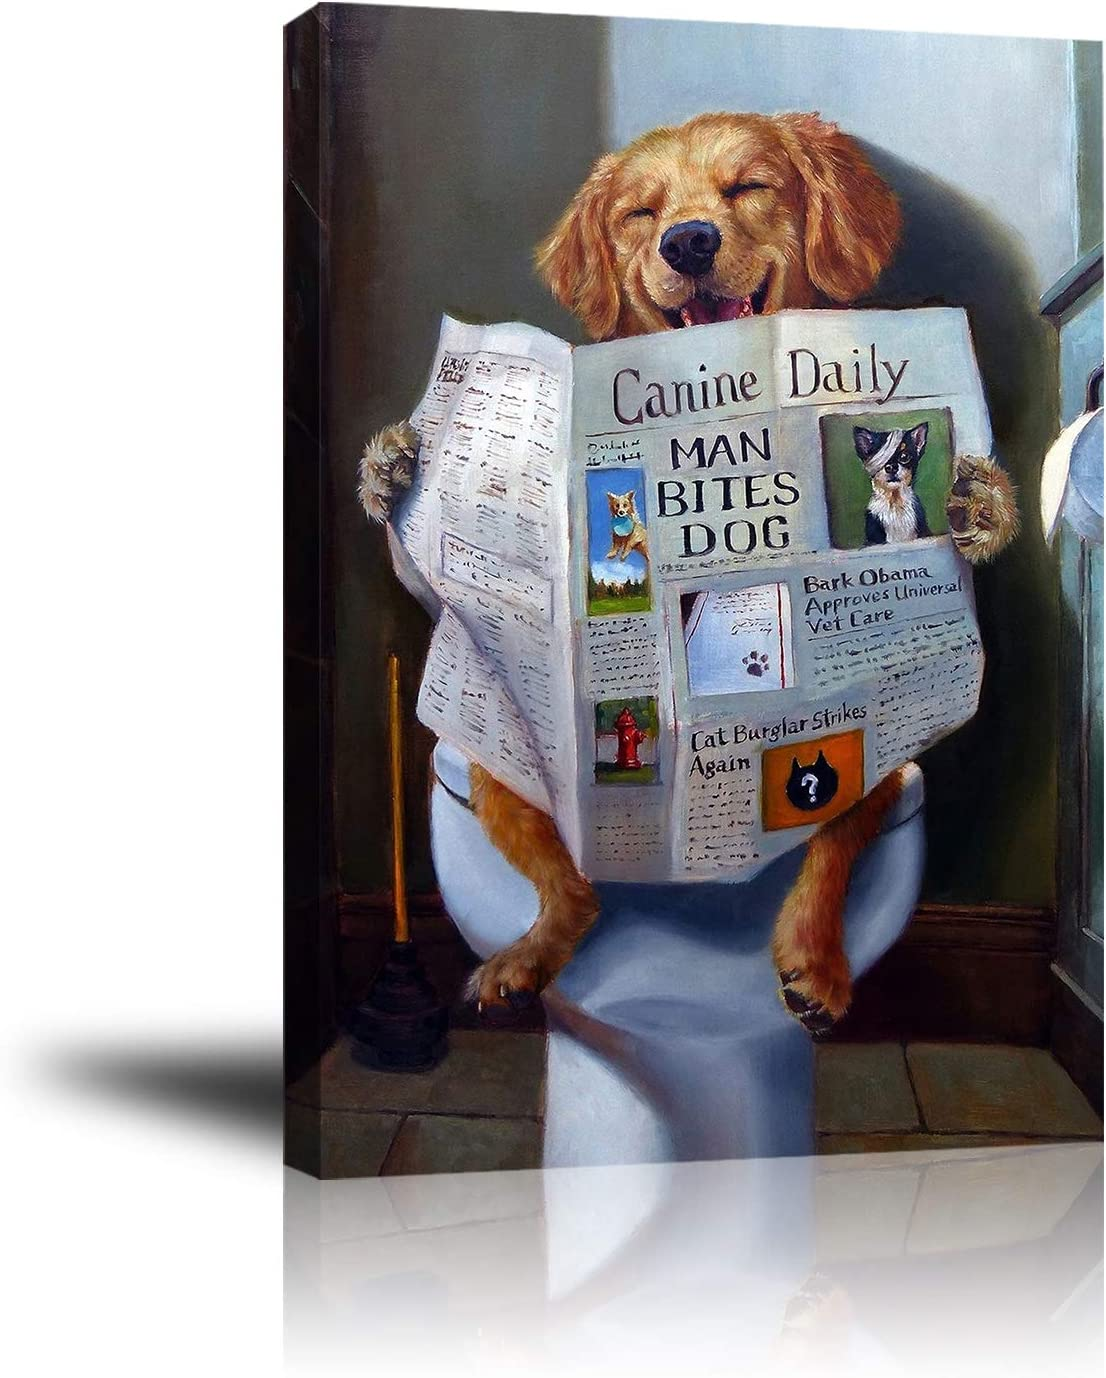 Animal Funny Poster Canvas Wall Art Decor, Cute Dog Reading Newspaper on Toilet, Moder Unframed Babyroom Wall Decor Office Bathroom Livingroom Bedroom Pictures